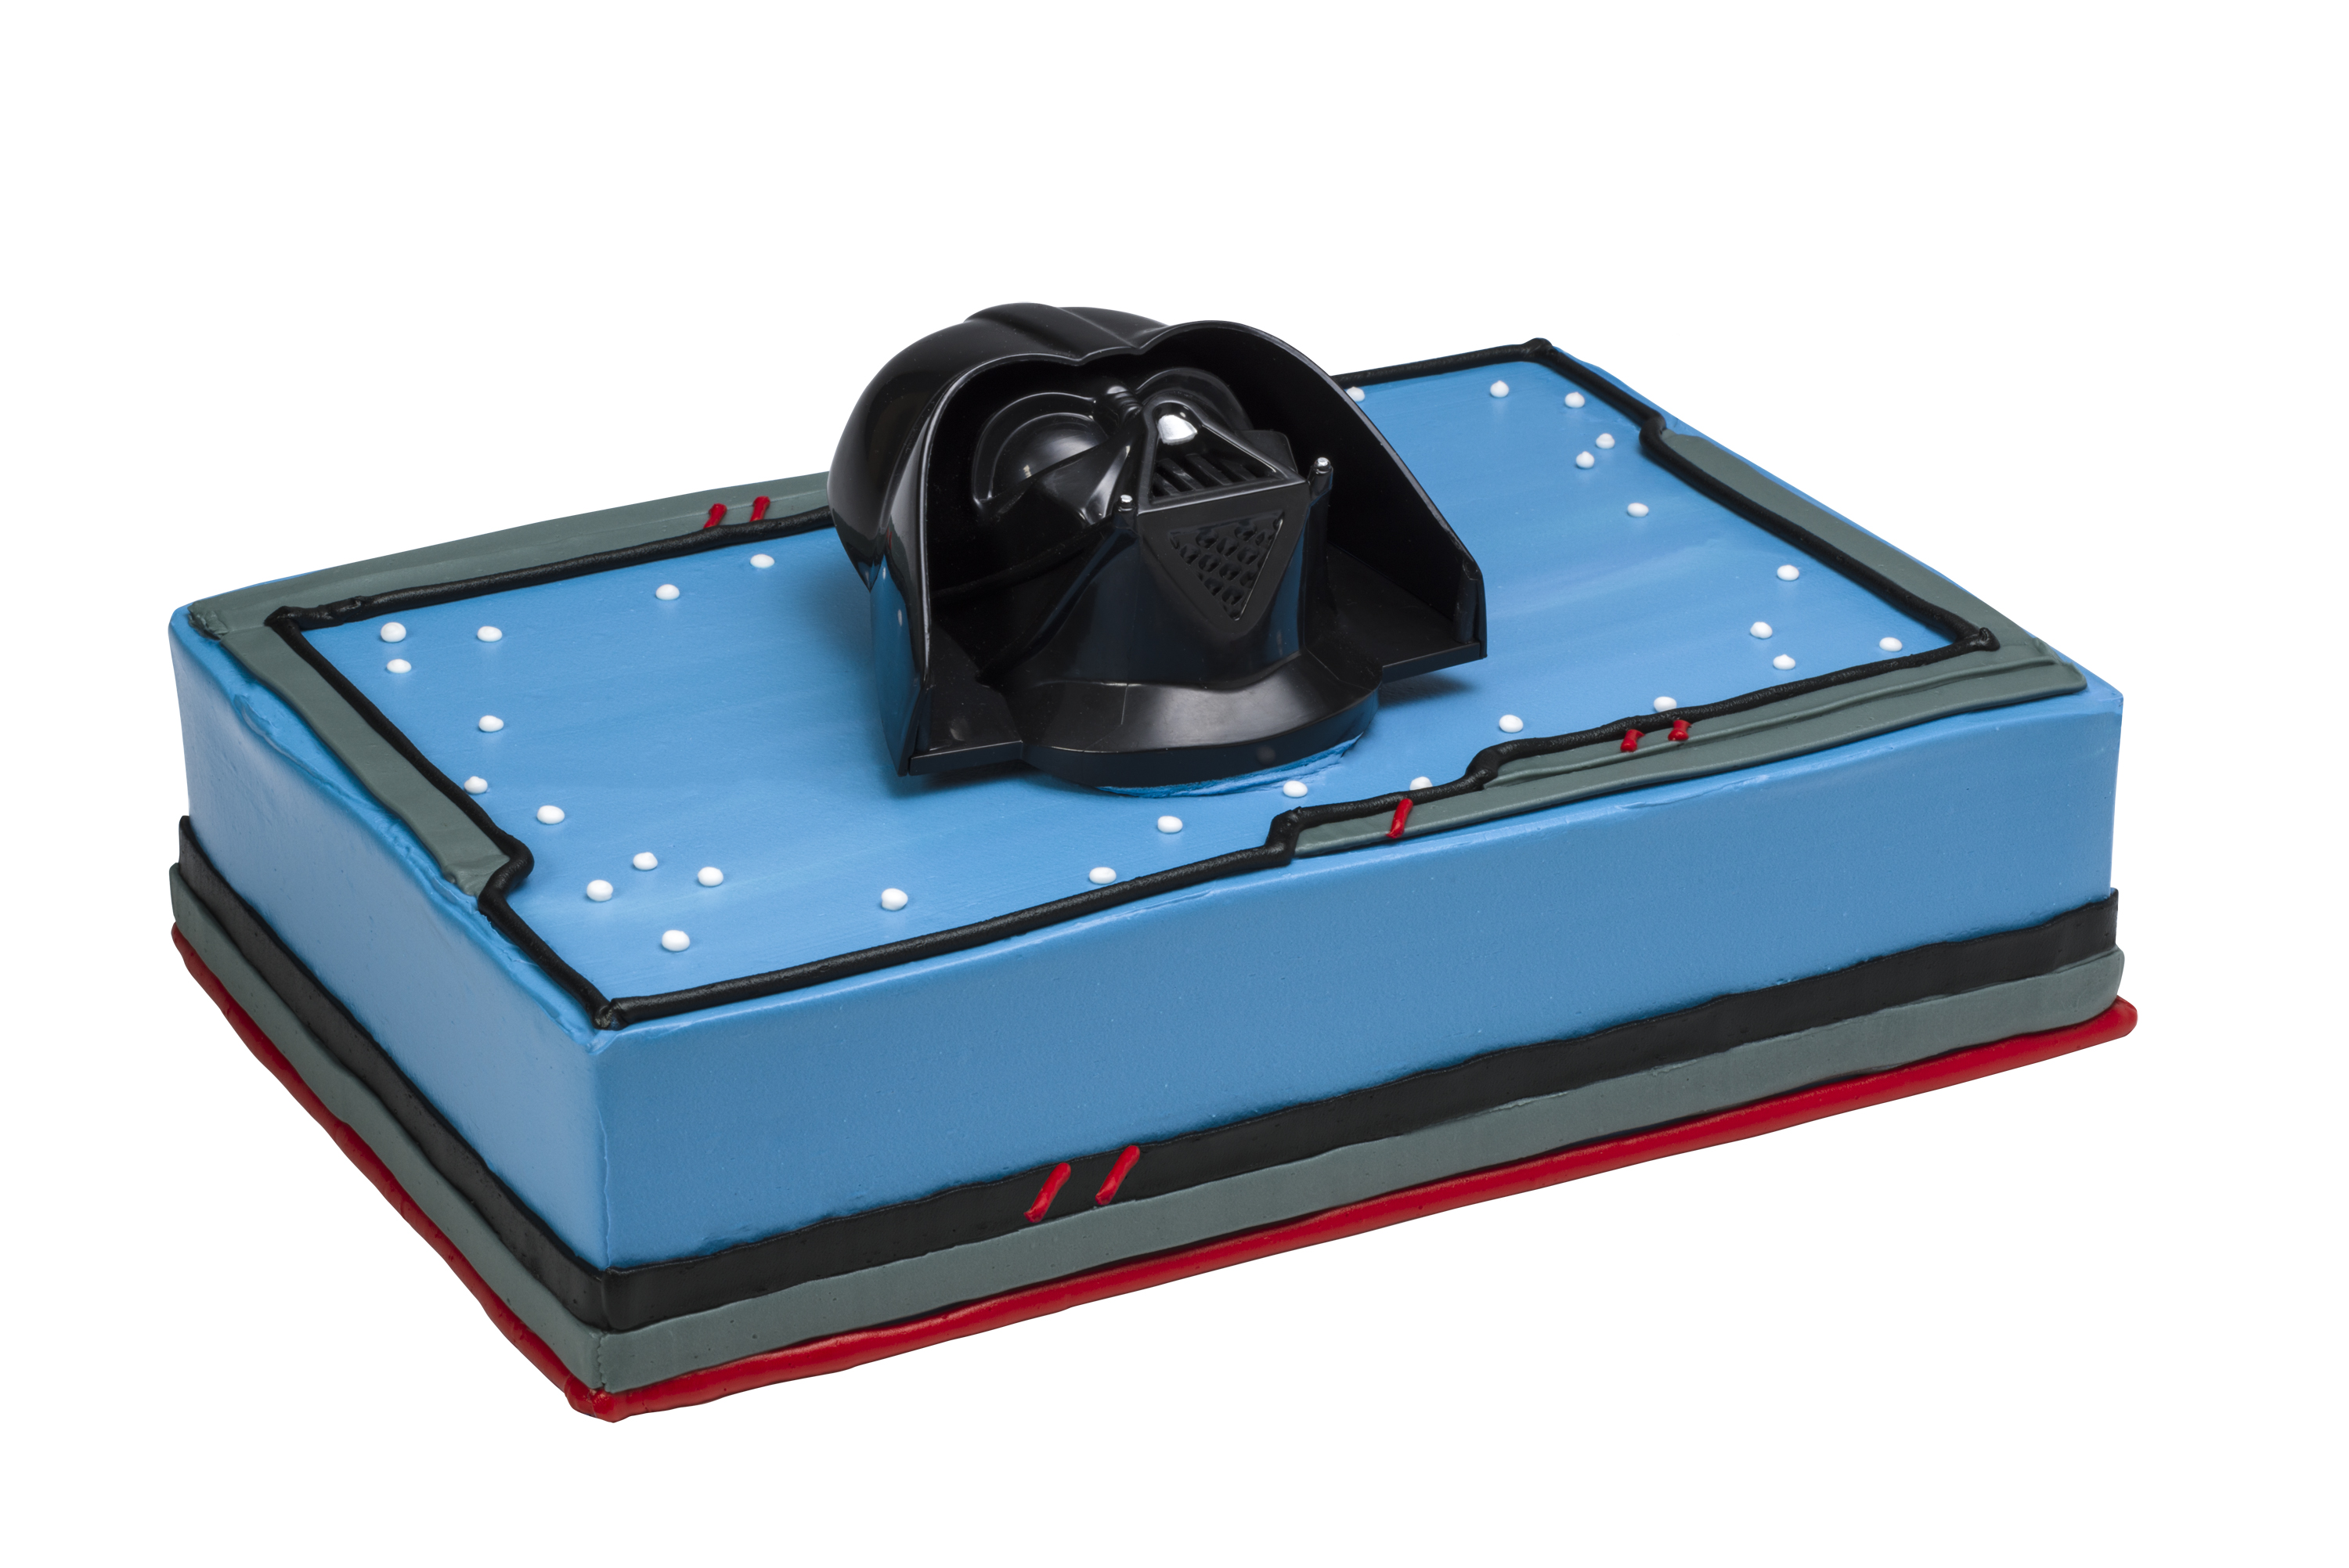 Baskin-Robbins introduces two new ice cream cakes to celebrate the upcoming release of Star Wars: The Force Awakens